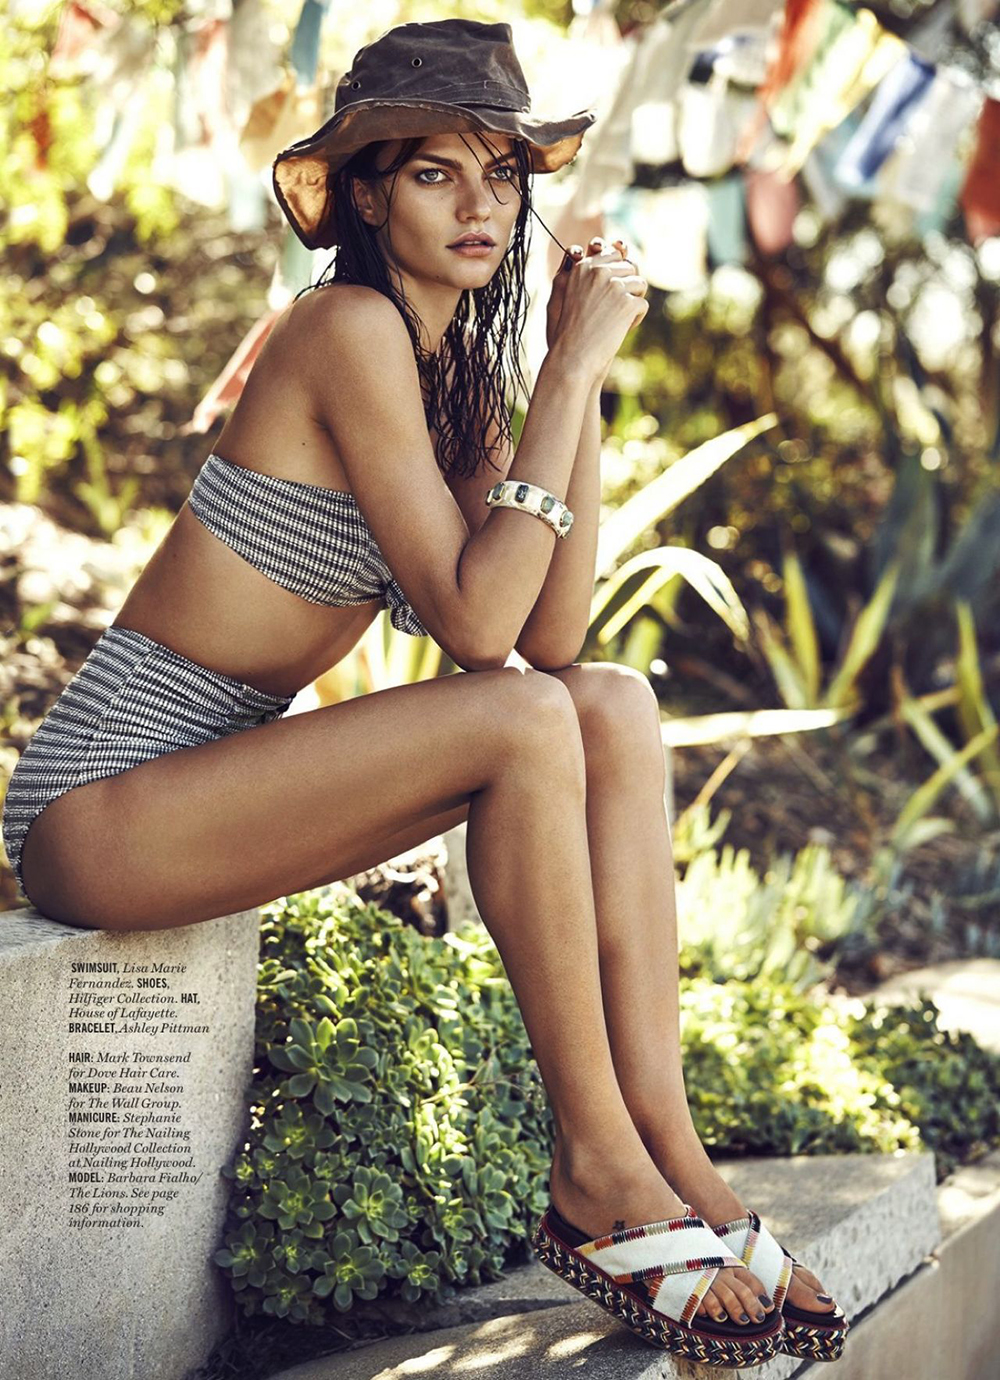 barbara-fialho-cosmopolitan-magazine-uk-june-2016-issue-7